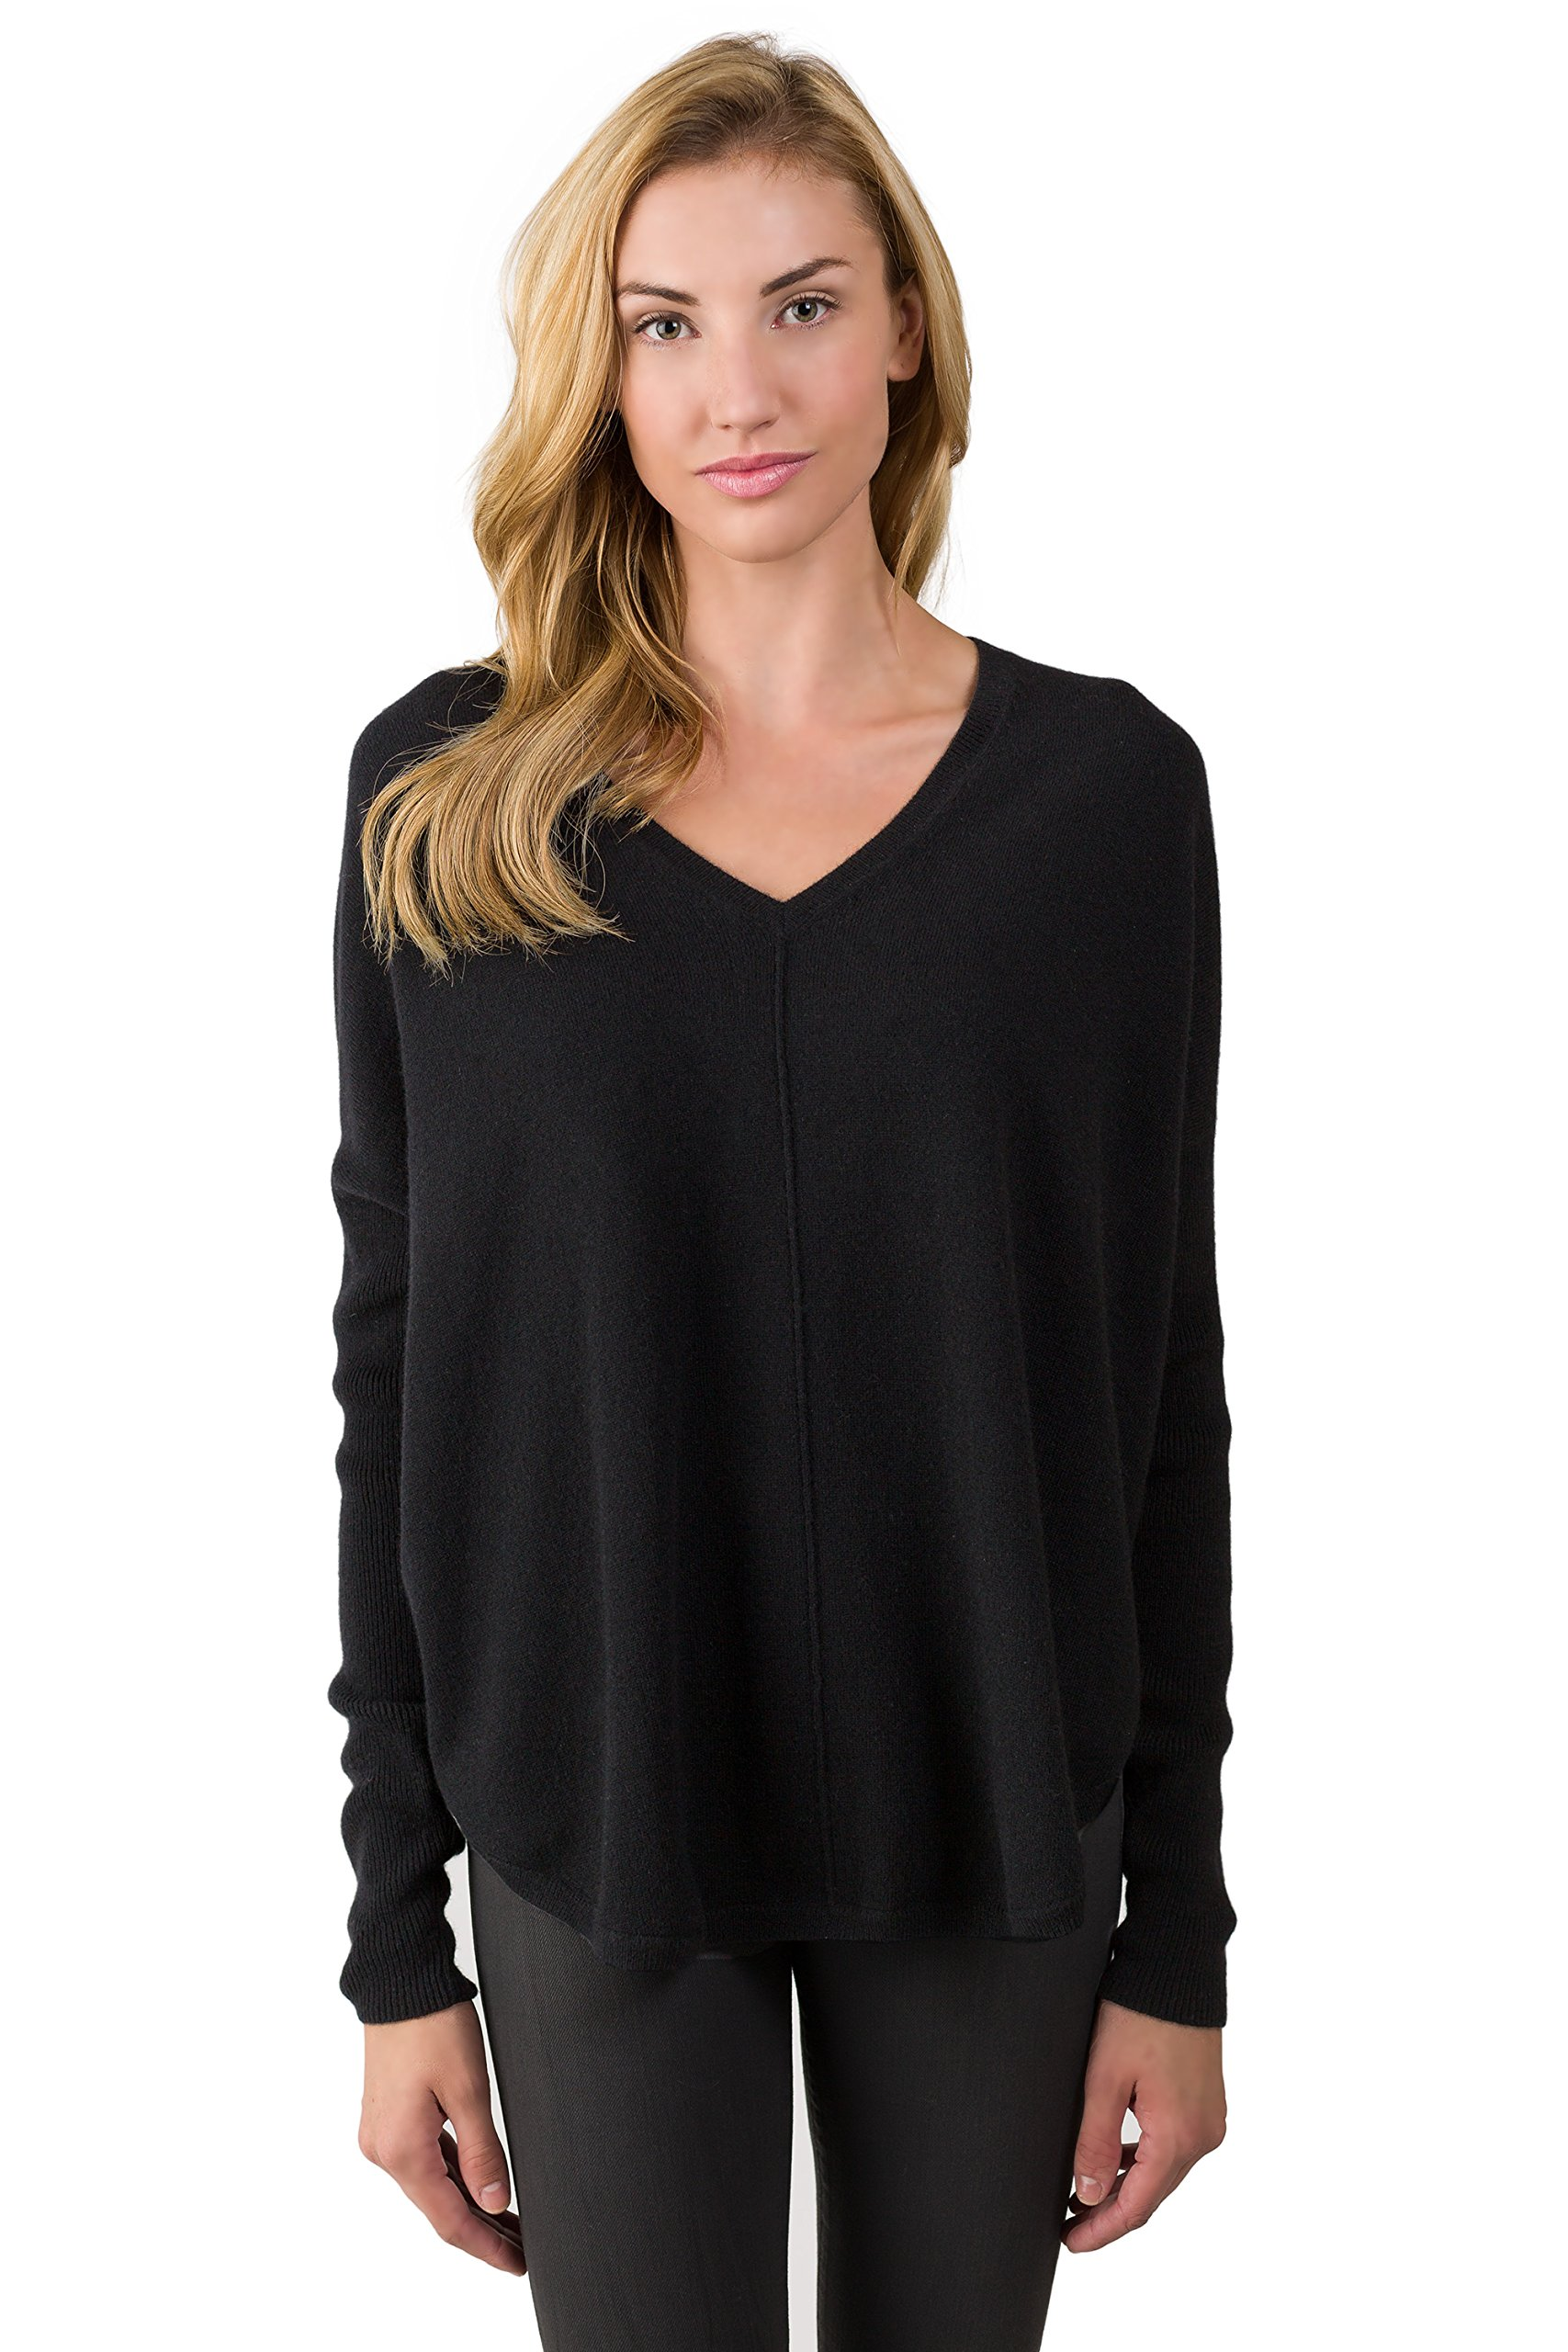 J CASHMERE Women's 100% Cashmere Long Sleeve Oversize V-neck Pullover Circle High Low Sweater Black Medium